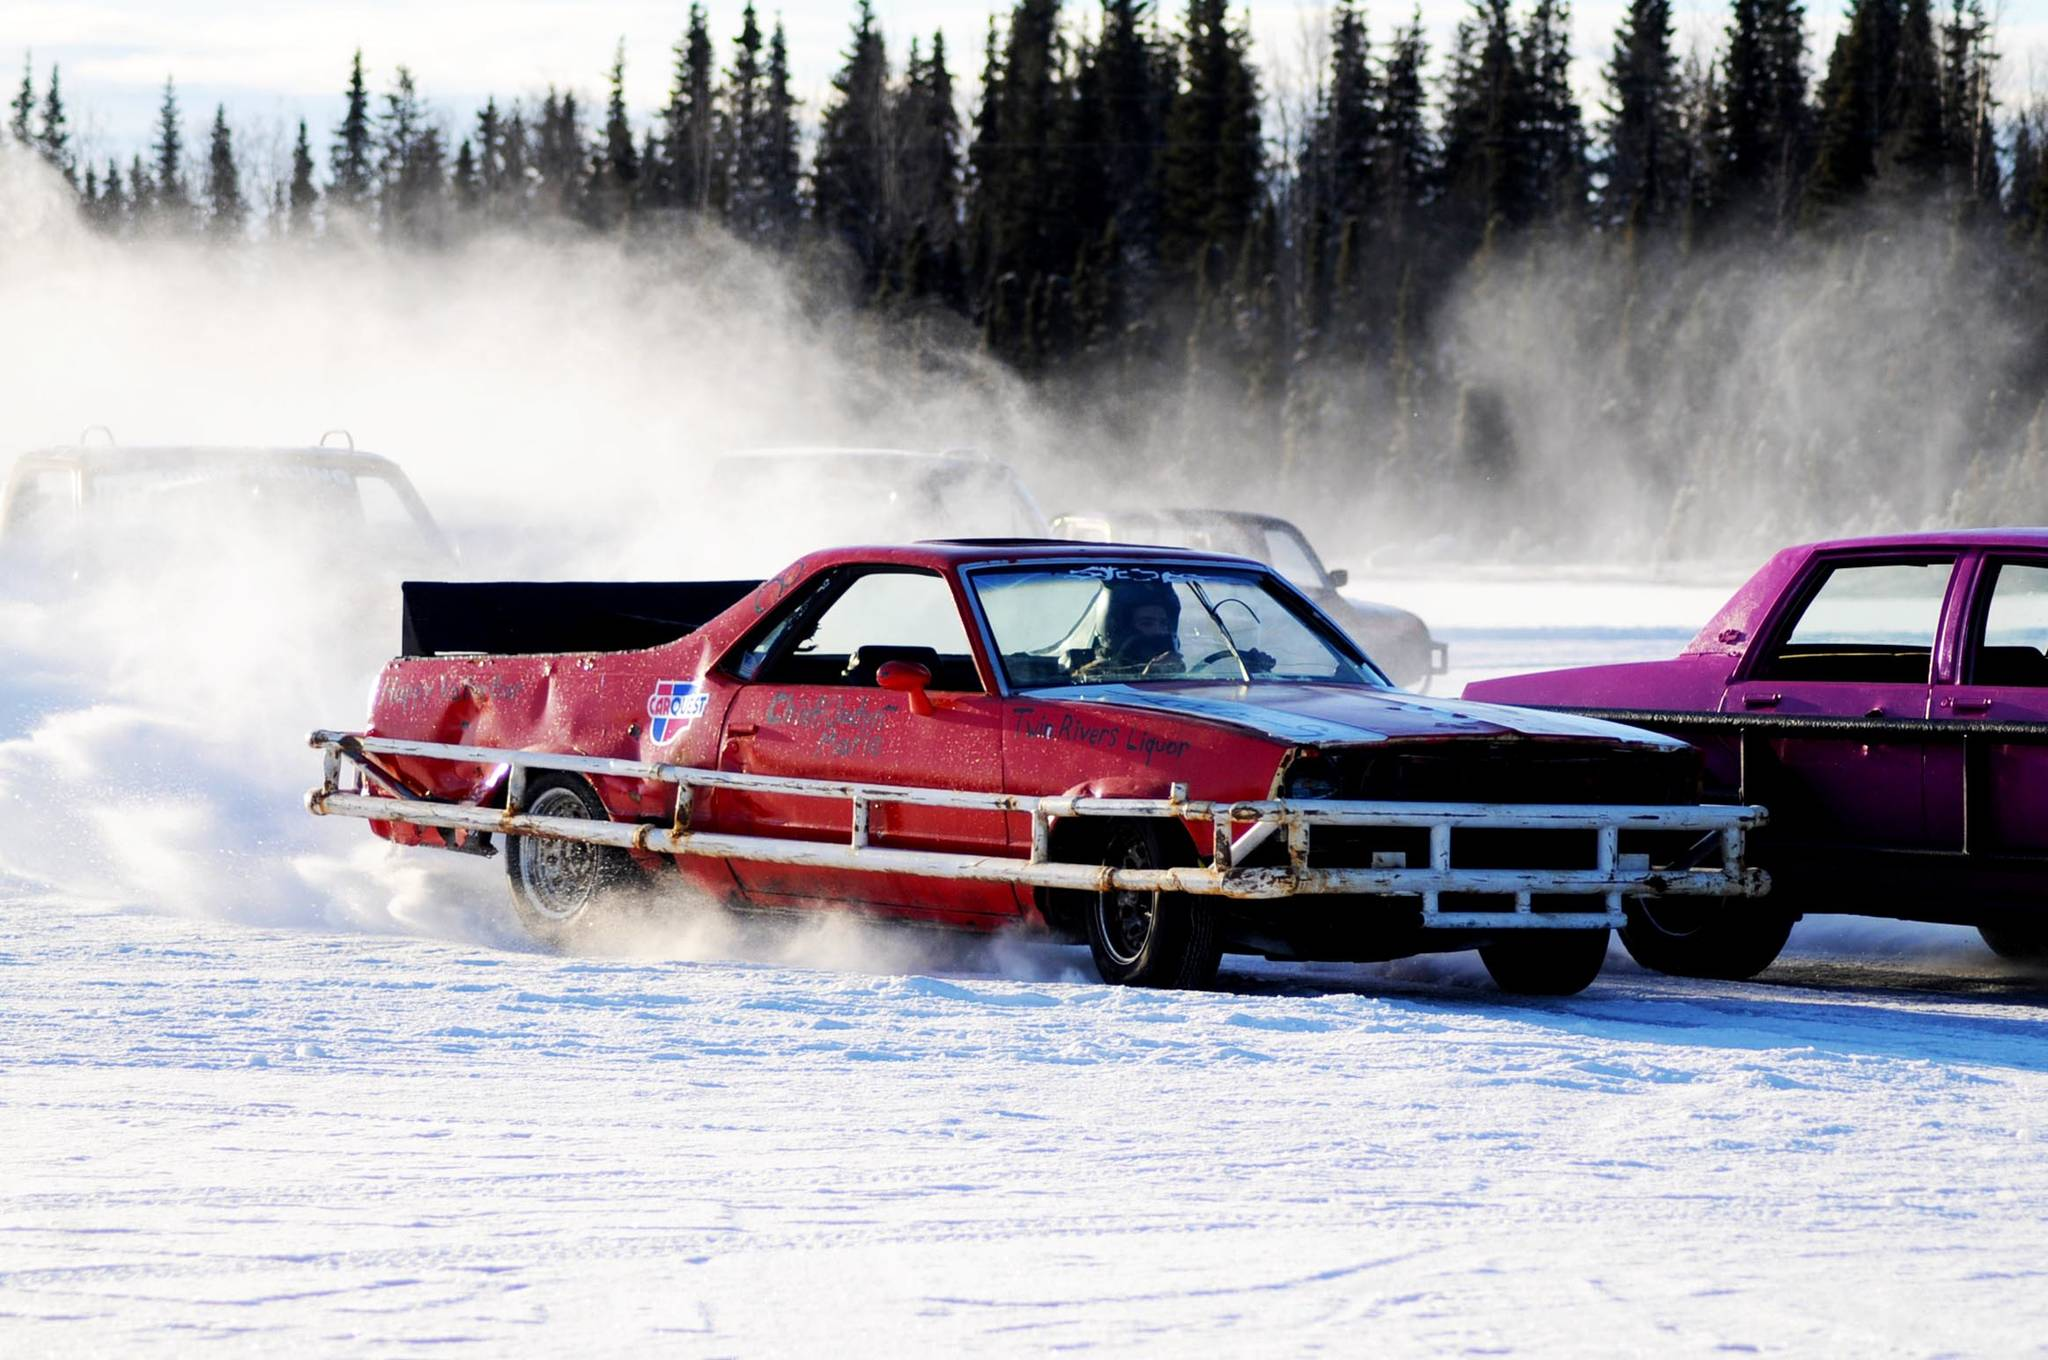 A racecar driver passes the crowd of competitors on the ice track atop a frozen lake at the Decanter Inn on Sunday, Jan. 22, 2018 in Kasilof, Alaska. Every Sunday in the winter, the Decanter Inn hosts Peninsula Ice Racing events for drivers to try their hand at the frozen track on the shallow lake at the bottom of the hill behind the inn. The racers can use studded tires on their front wheels only and equip the sides of their vehicles with bumpers as other vehicles are likely to slip and slide into them. Spinning out is common. A tow truck waits on the sidelines to retrieve drivers who get stuck on the berms alongside the track. Fans gathered Sunday despite the cold to cheer the racers on. The men race in the morning, followed by the women's races in the afternoon. (Photo by Elizabeth Earl/Peninsula Clarion)